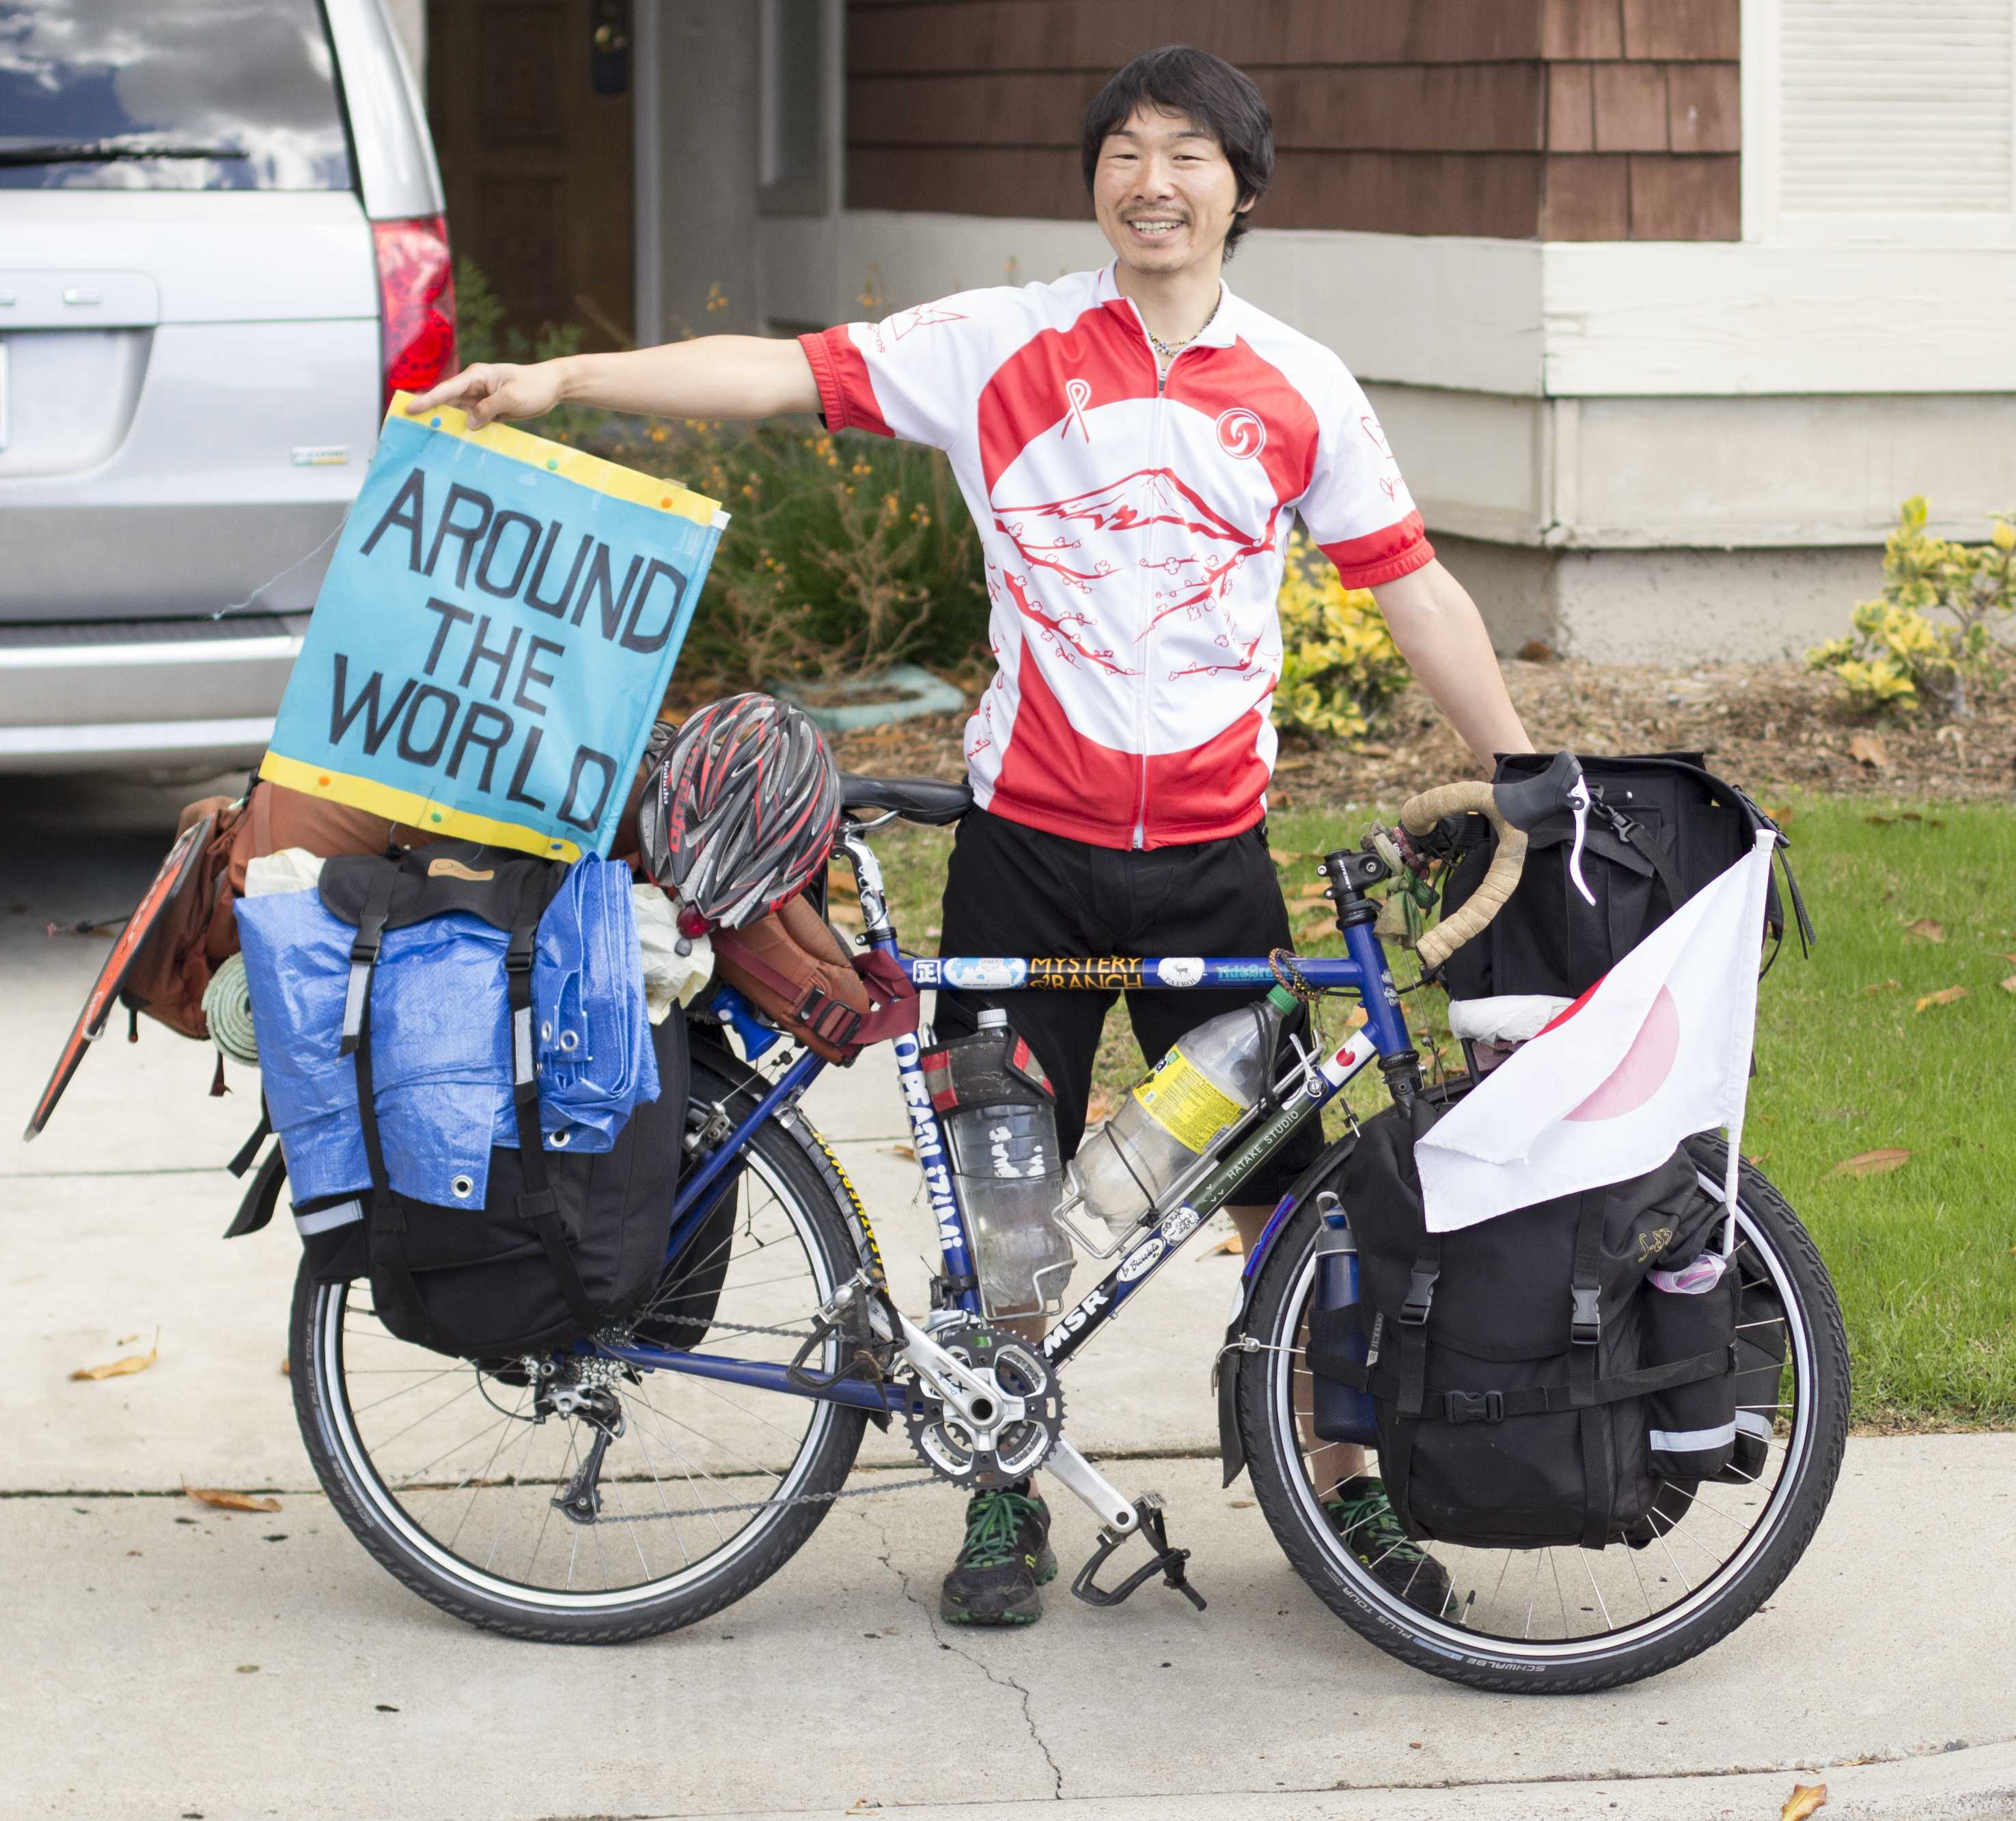 """Japanese cyclist Ryohei """"Rio"""" Oguchi, pictured Nov. 21 in Bonita, stopped in San Diego recently as part of a global journey. (Photo by Celia Jimenez)"""